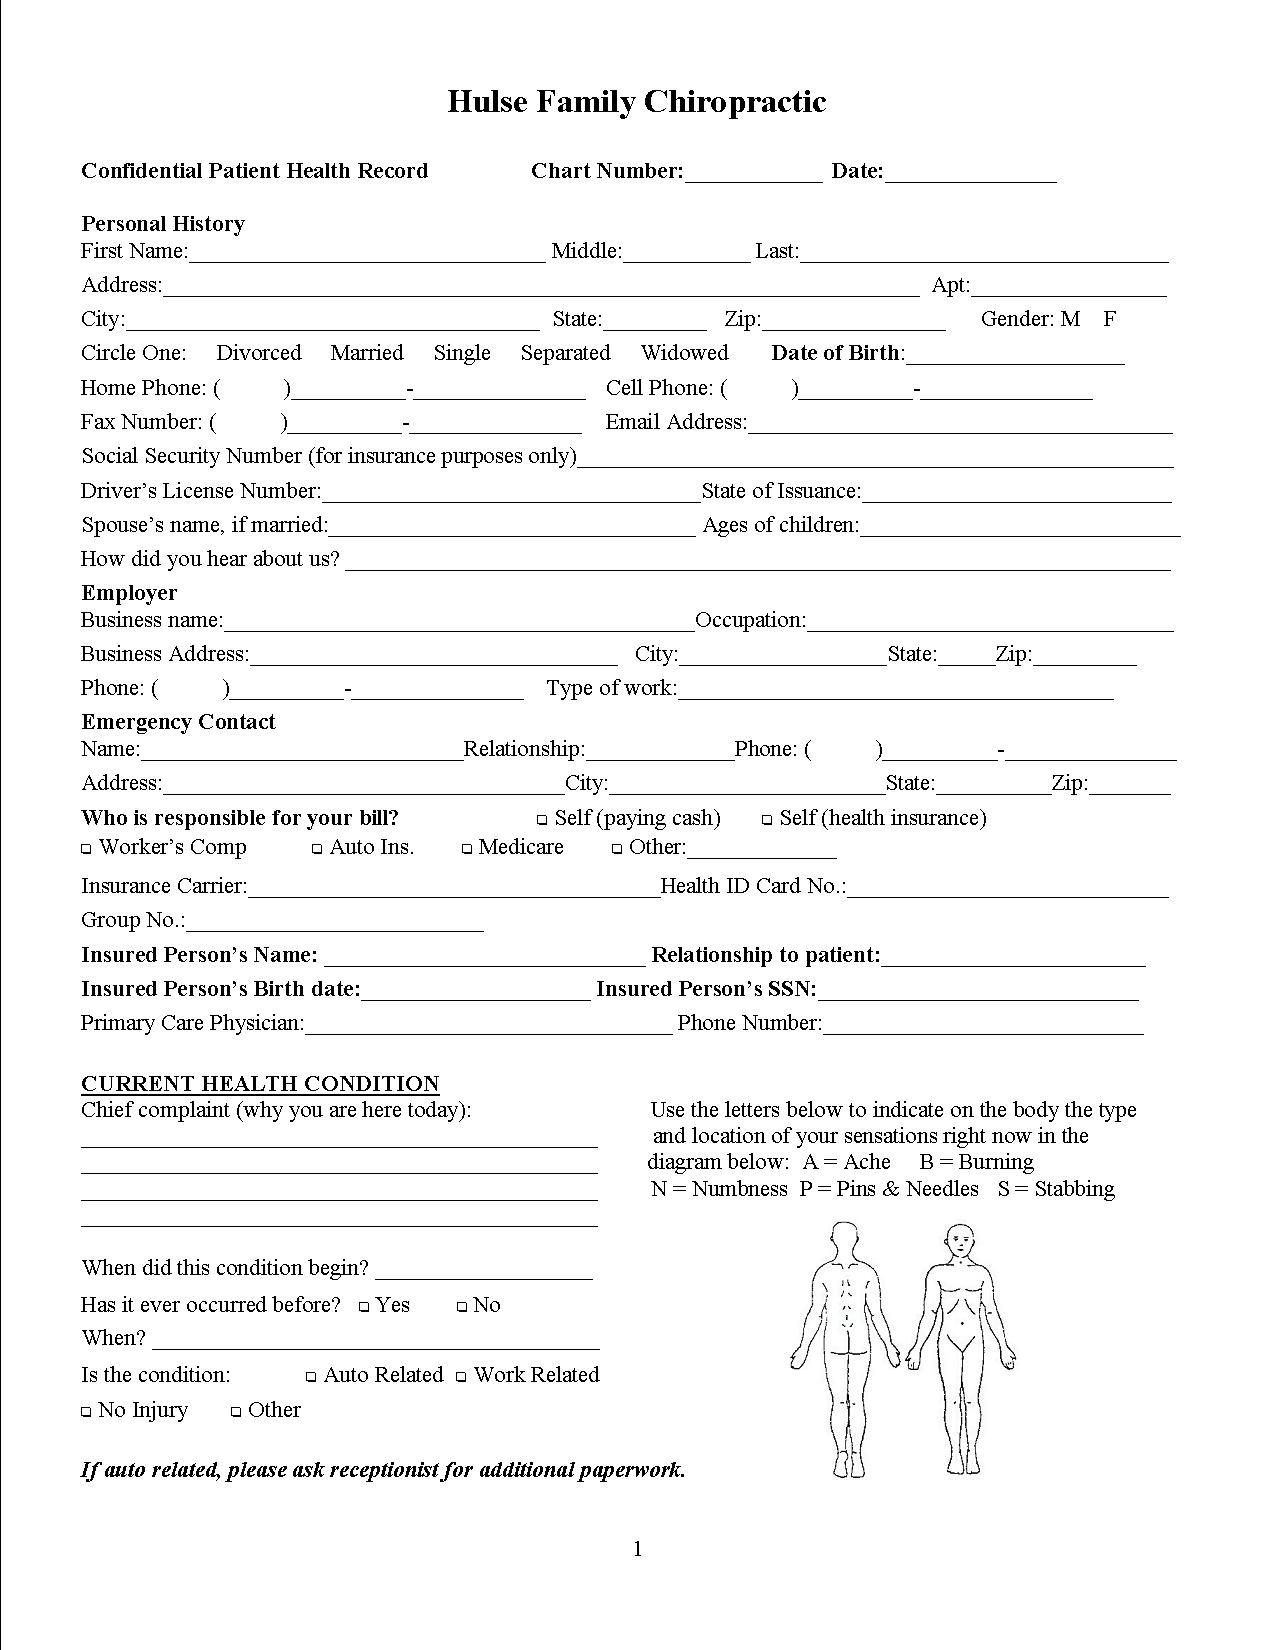 5 Images of Printable Chiropractic Forms